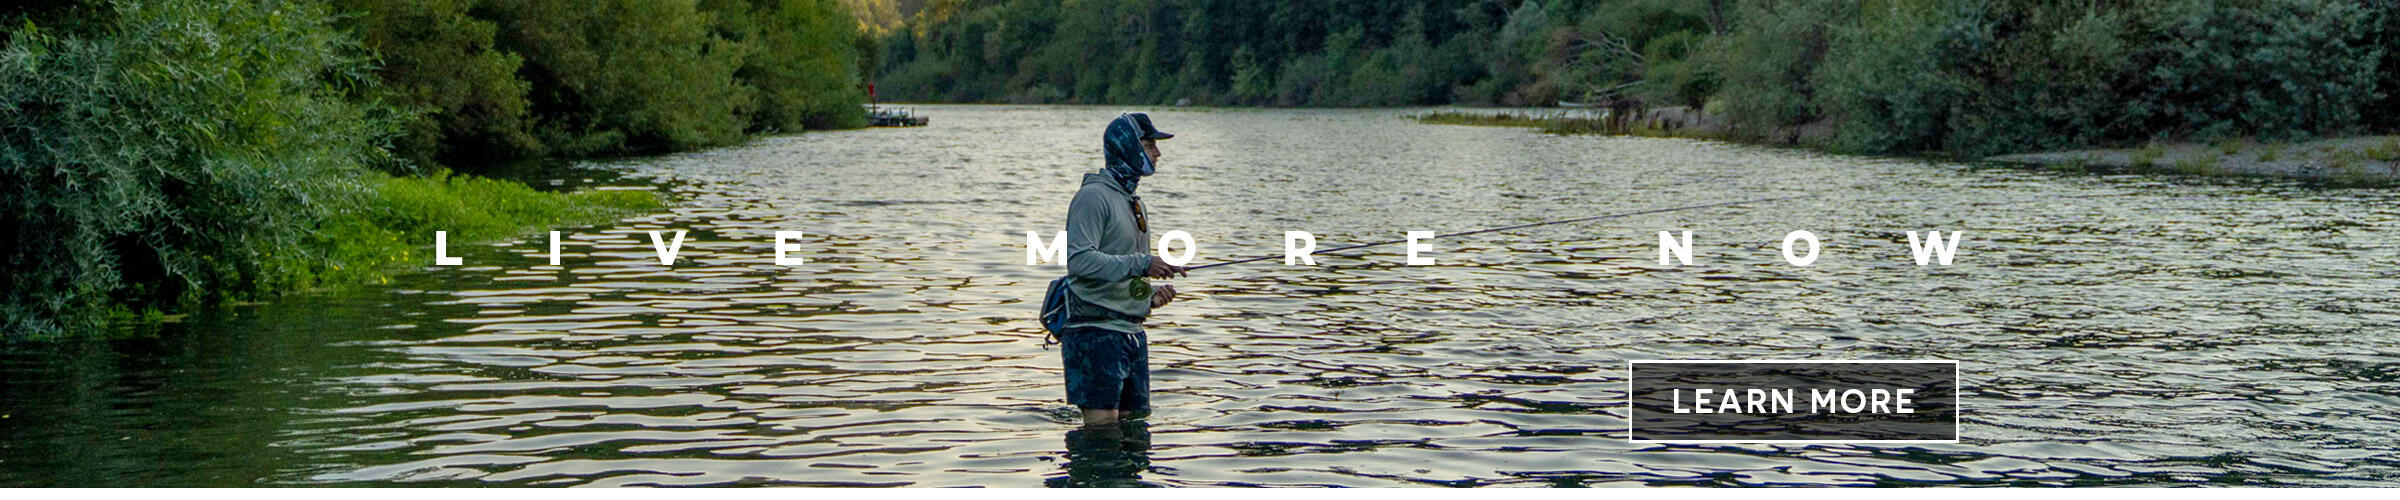 Live More Now - Explore Outdoor Moments